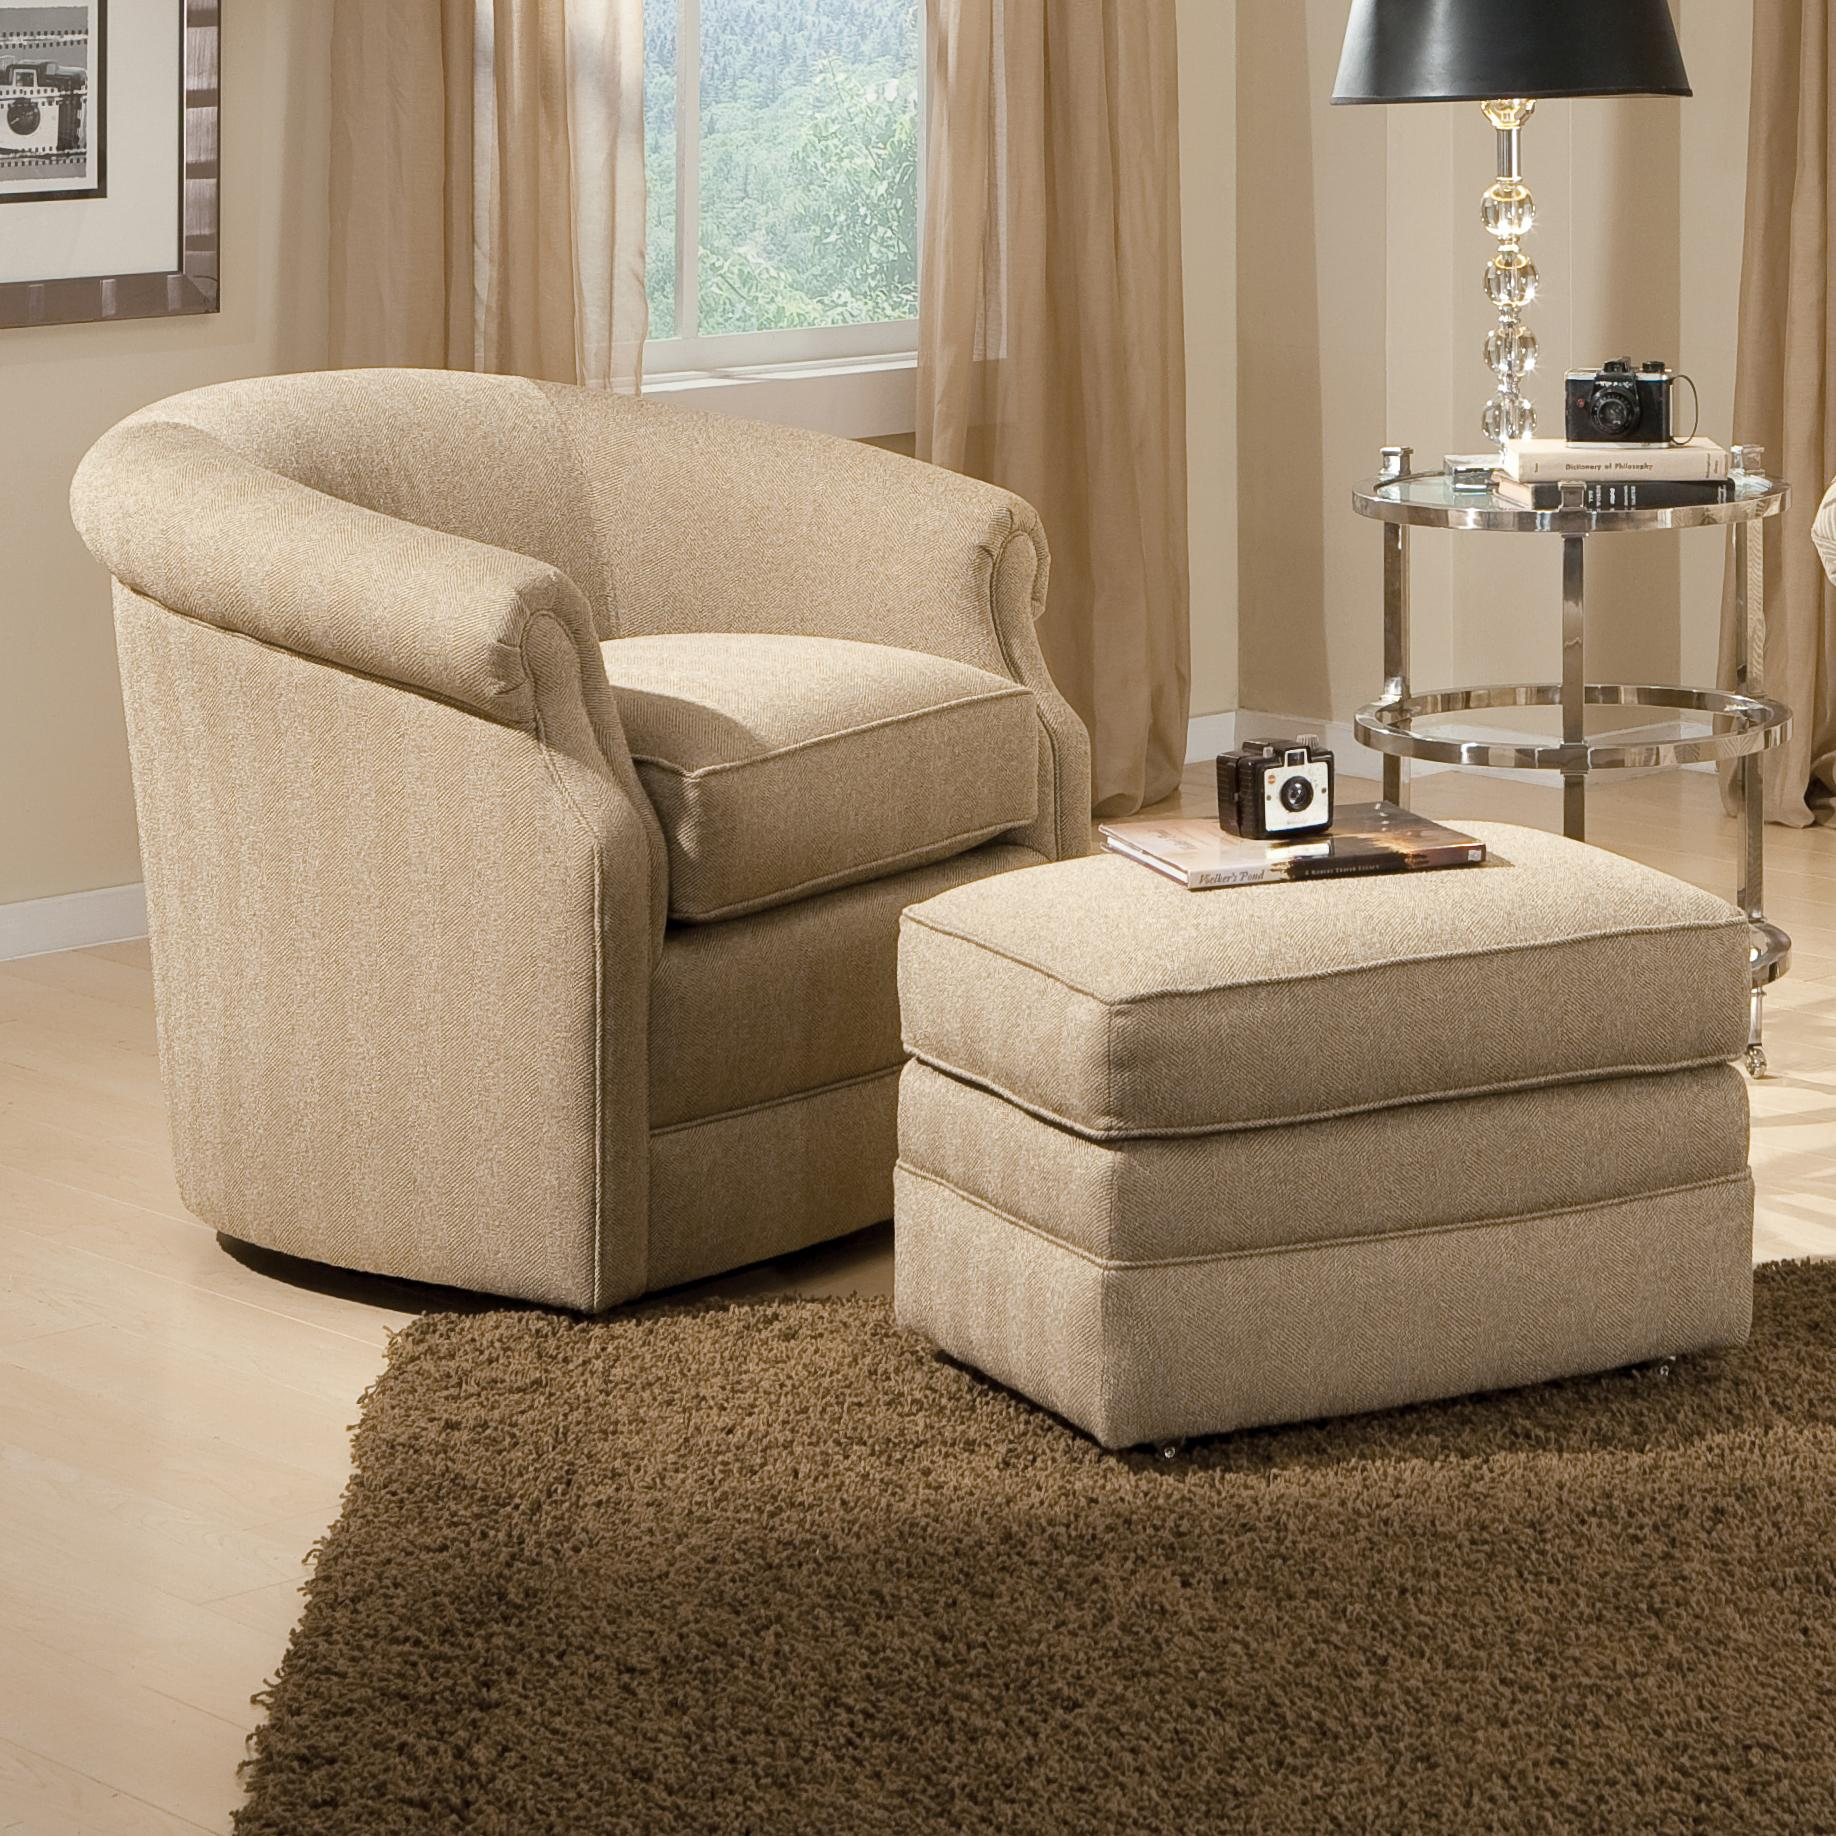 Barrel Swivel Chair and Ottoman with Casters by Smith